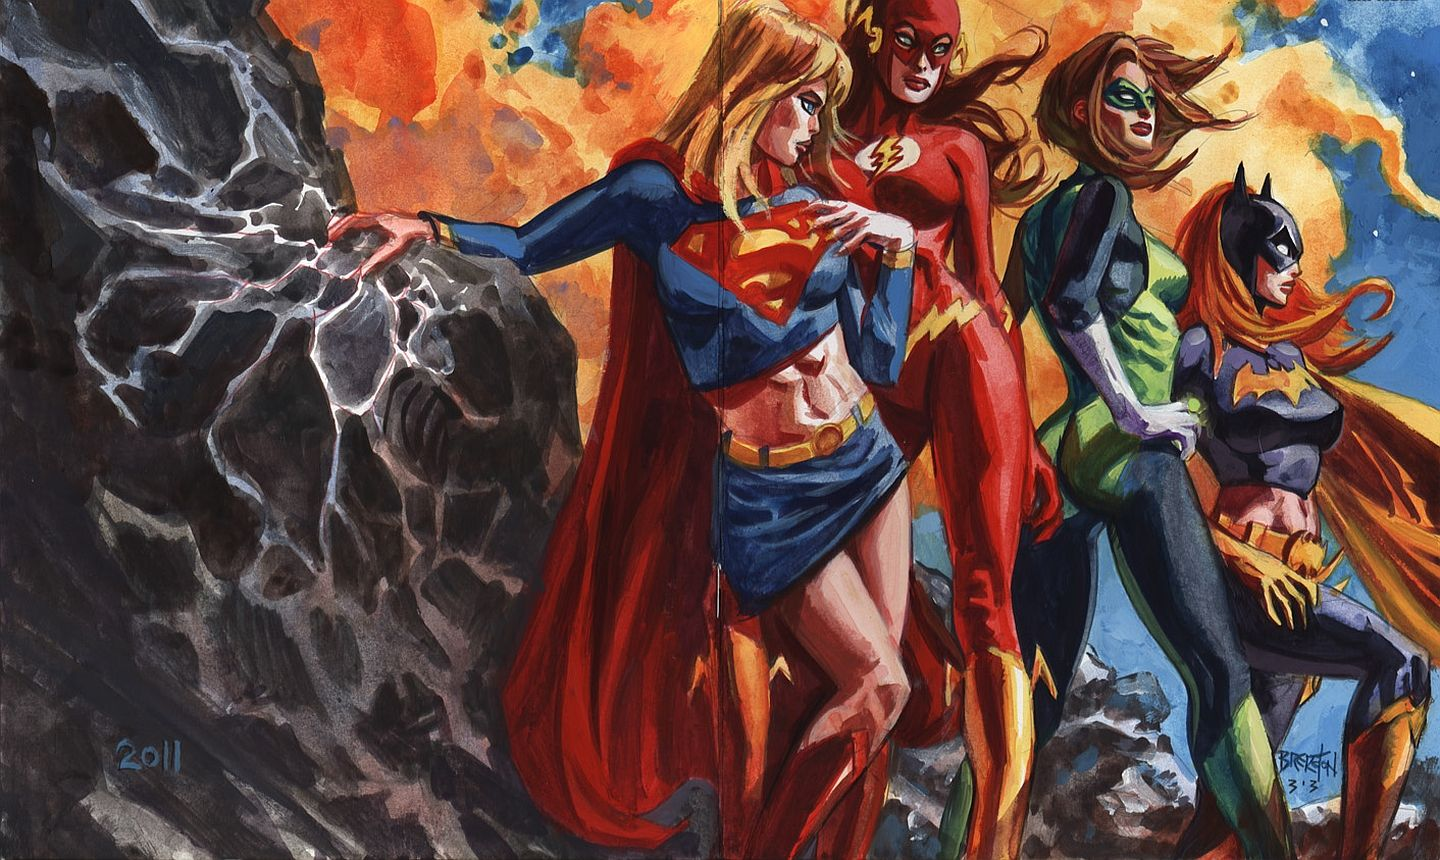 Hd wallpaper justice league - Justice League Wallpaper Hd Wallpapers High Definition 100 Hd Quality